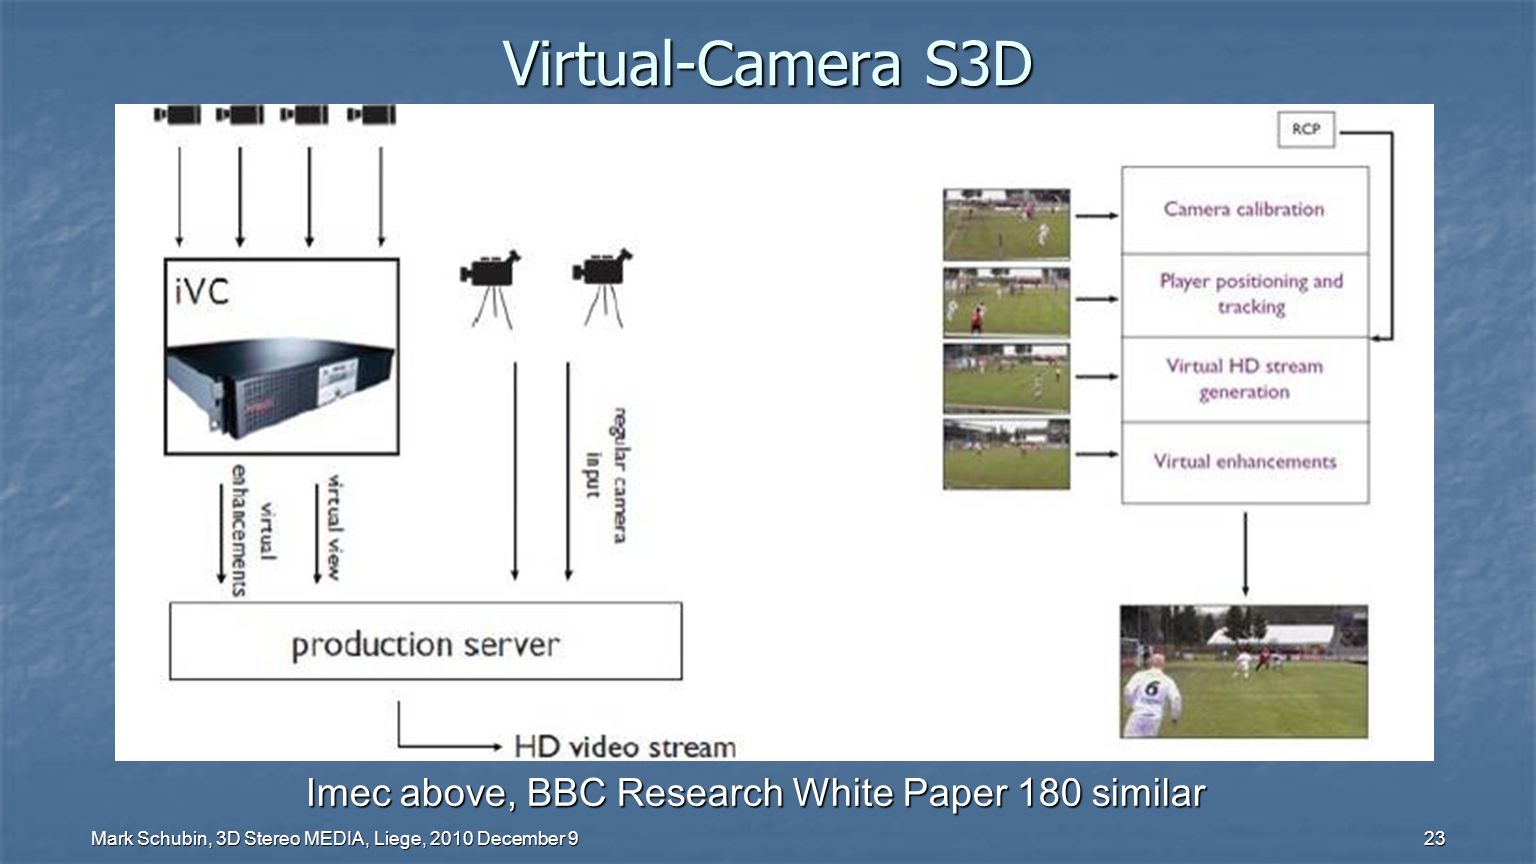 Mark Schubin, 3D Stereo MEDIA, Liege, 2010 December 9 23 Virtual-Camera S3D Imec above, BBC Research White Paper 180 similar